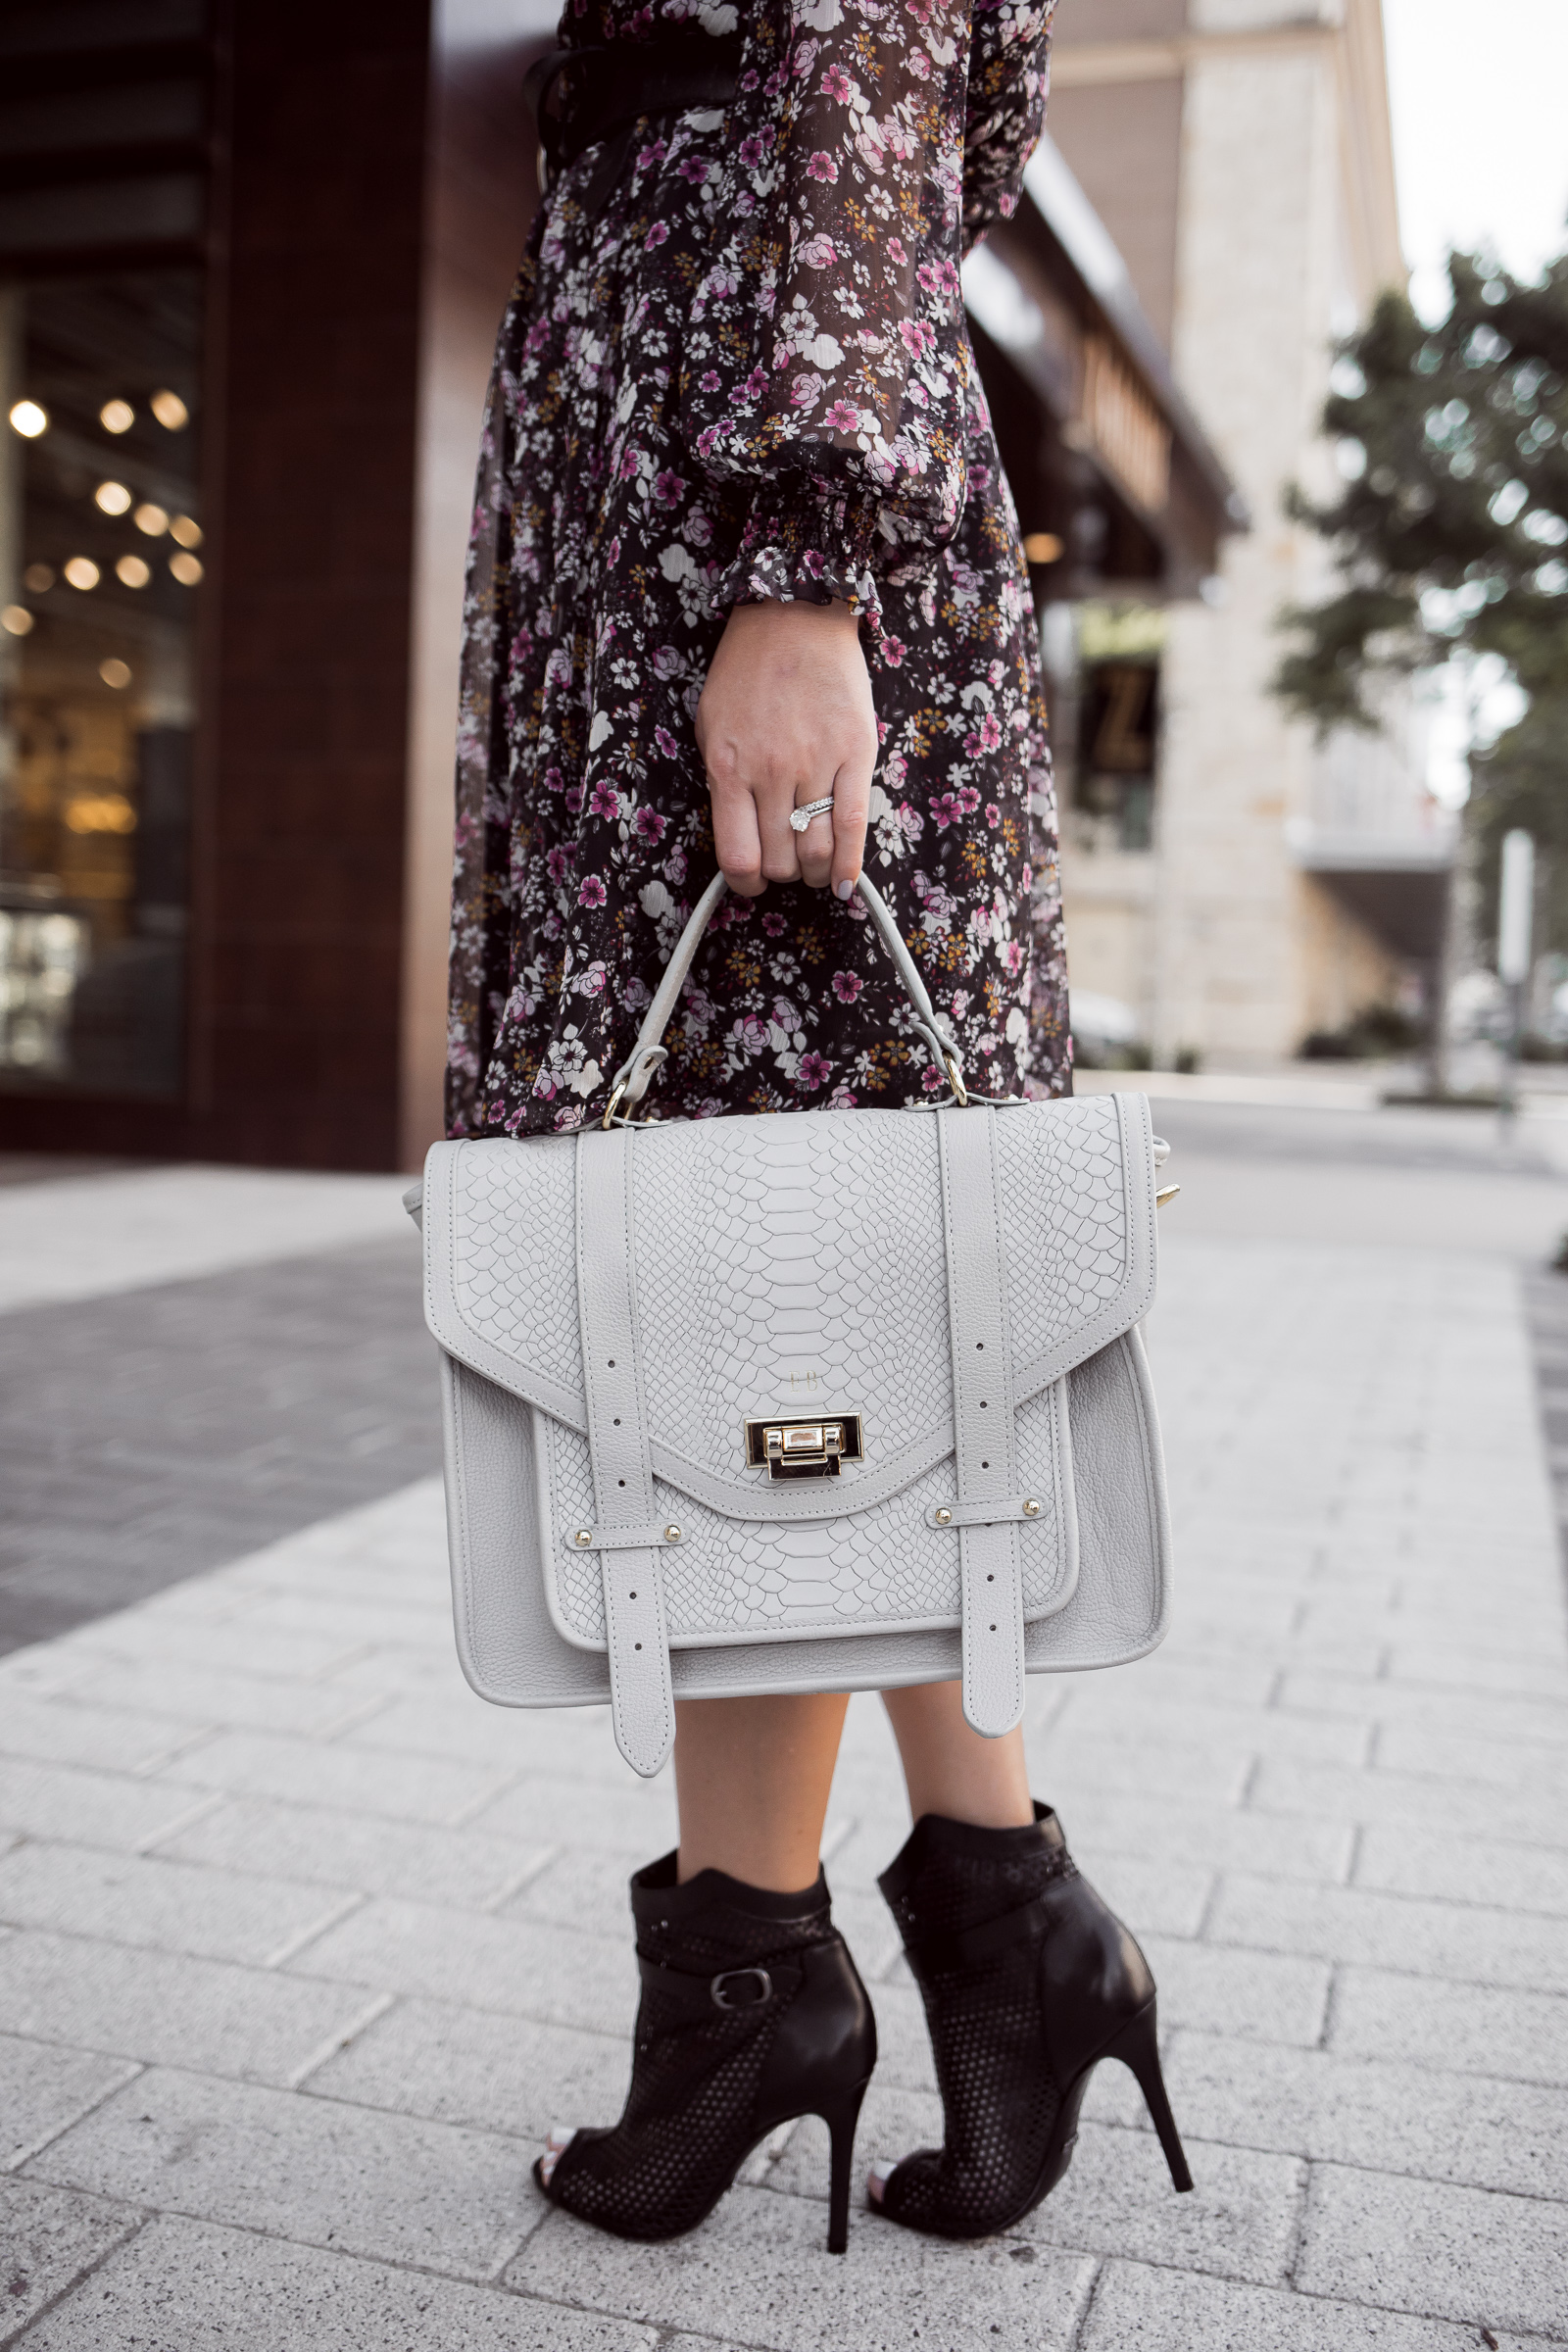 Houston fashion blogger Uptown with Elly Brown wears a Grey Gigi New York Saddle Bag and Schutz boots